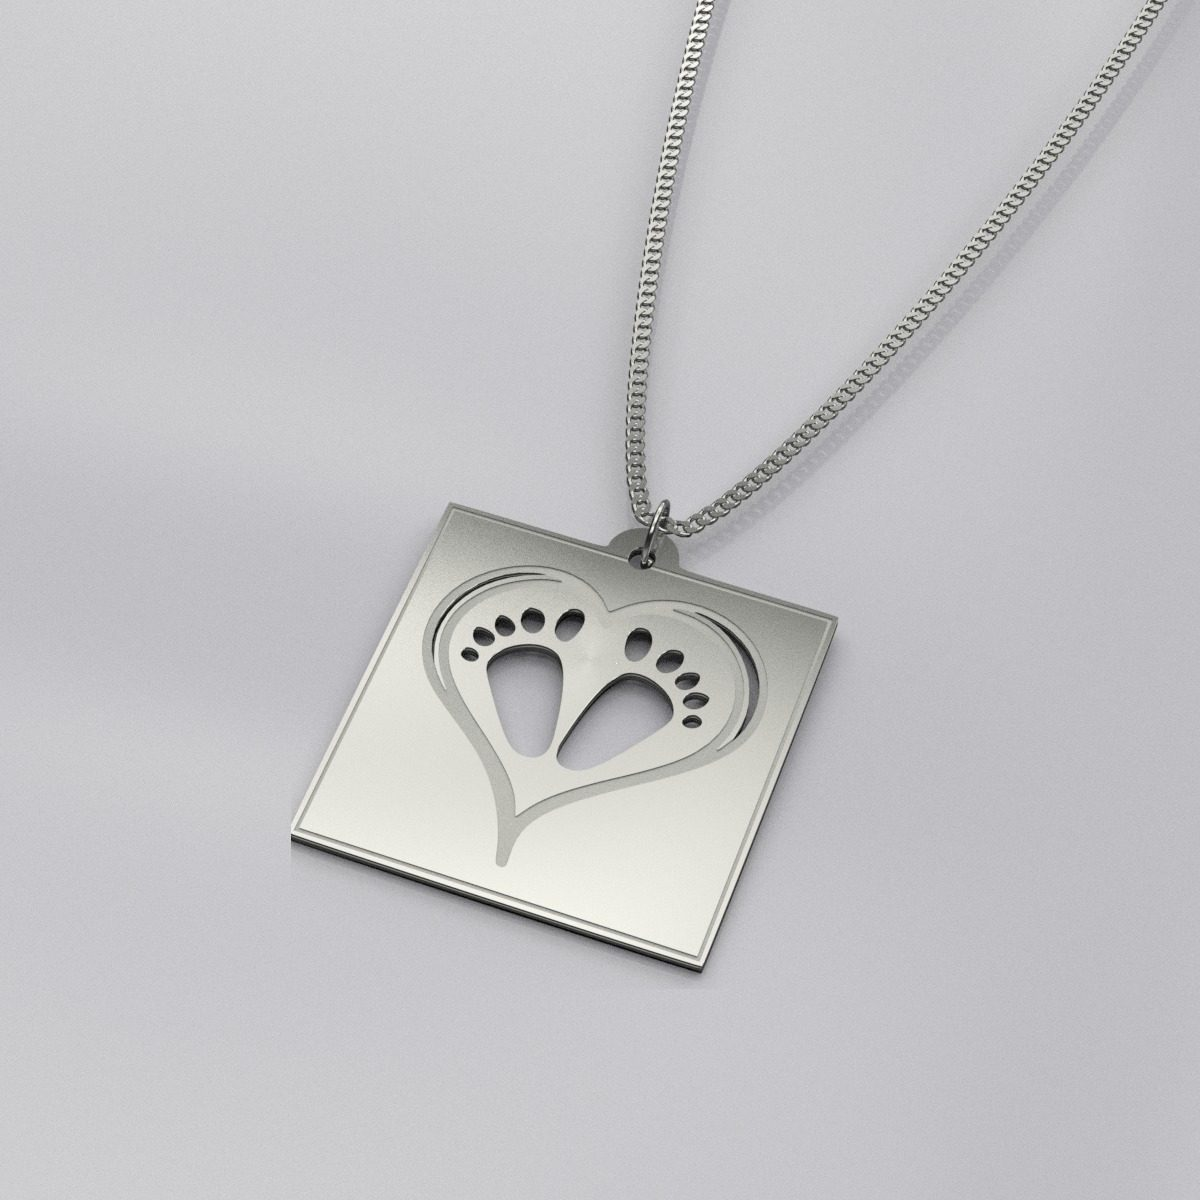 Engraved Baby Footprint Casual Necklace